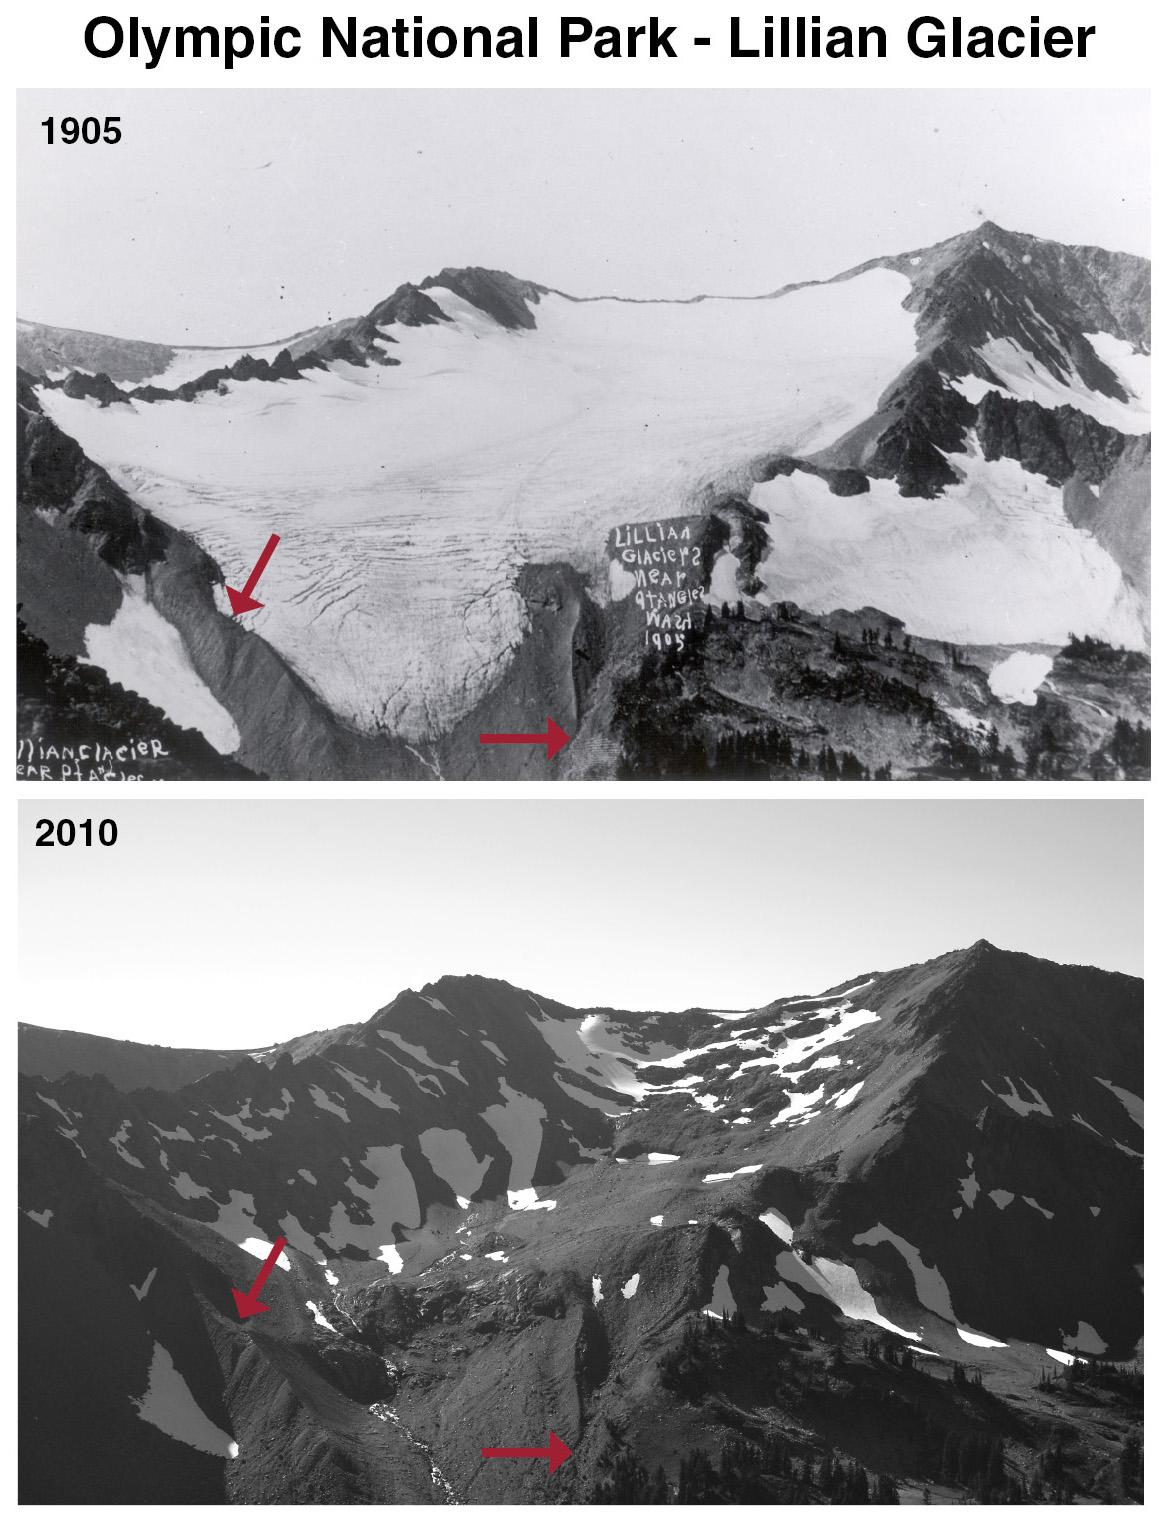 This photo shows the recession of the Lillian Glacier at Olympic National Park.